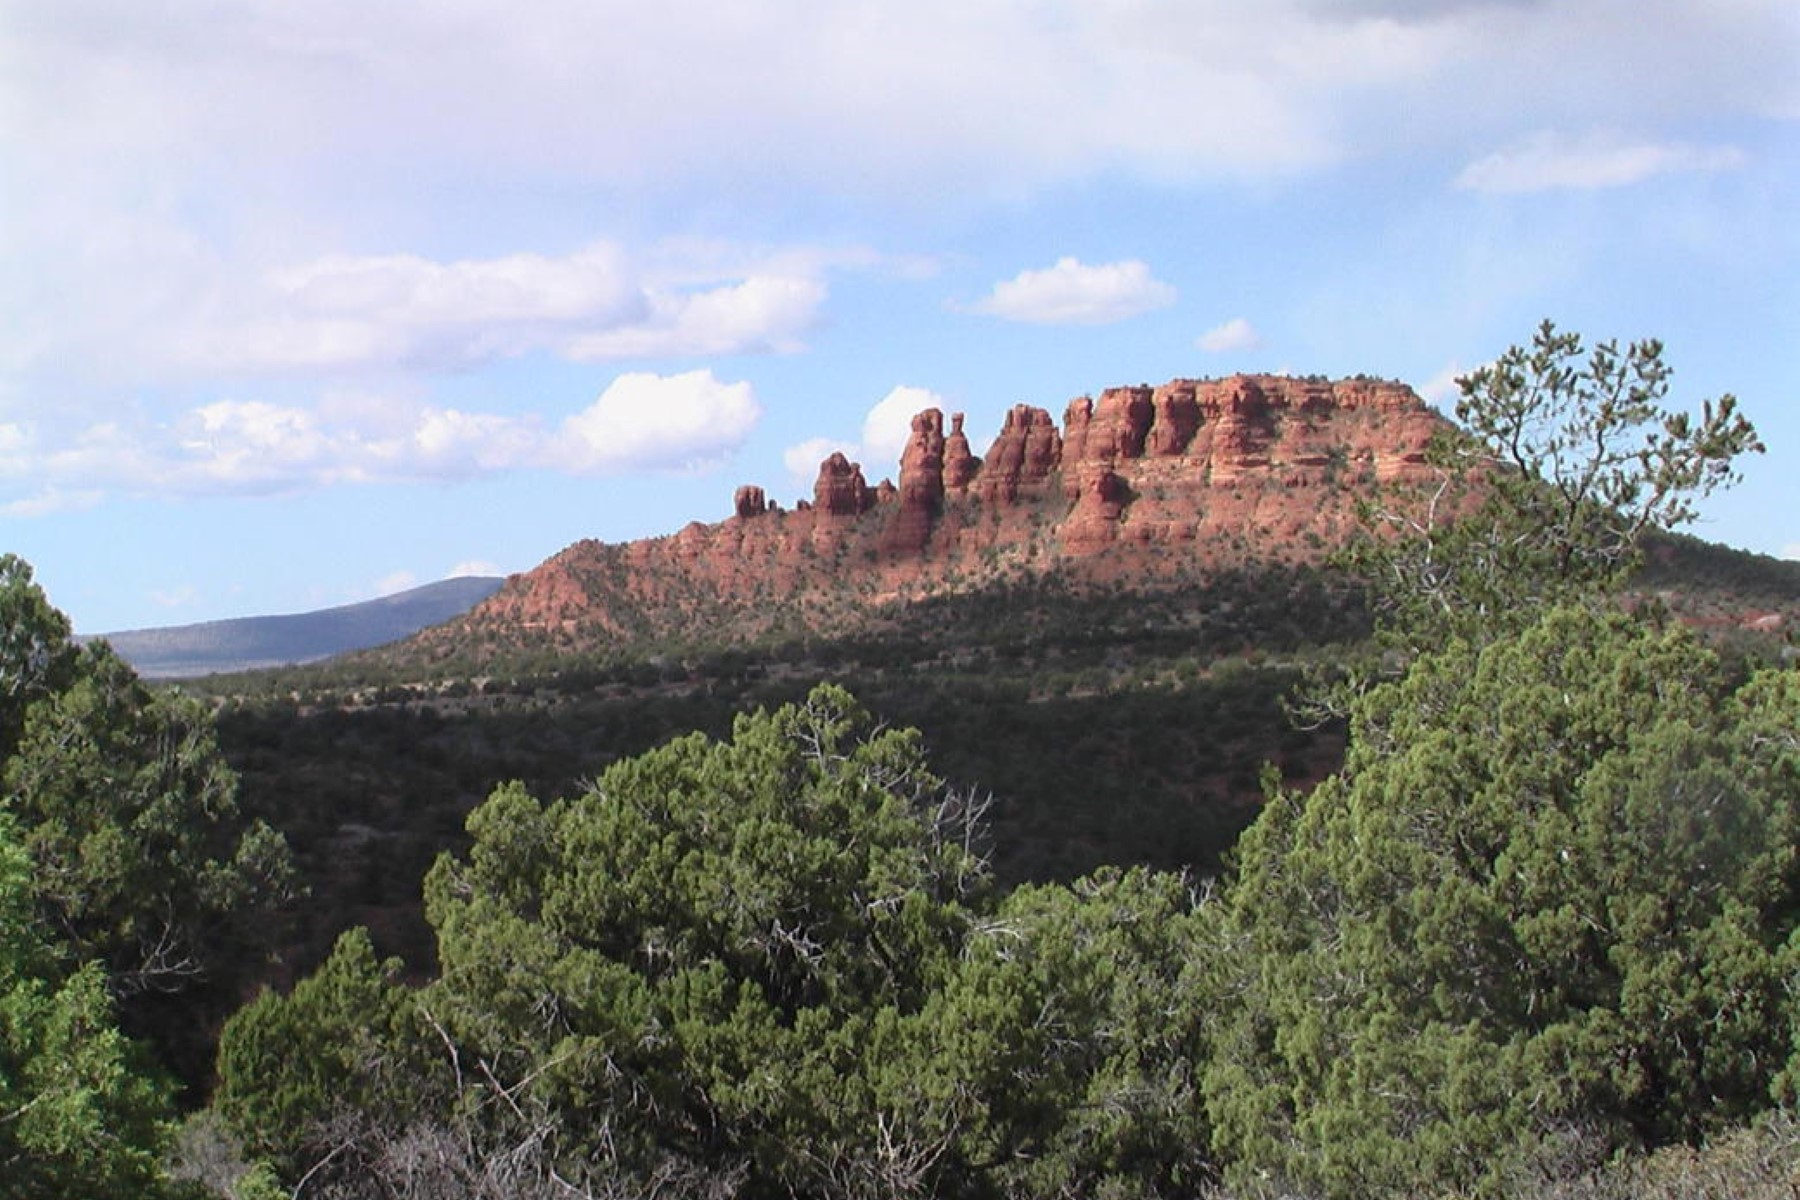 Terreno para Venda às Lovely lot with spectacular views 865 Distant Drums Rd Sedona, Arizona, 86336 Estados Unidos